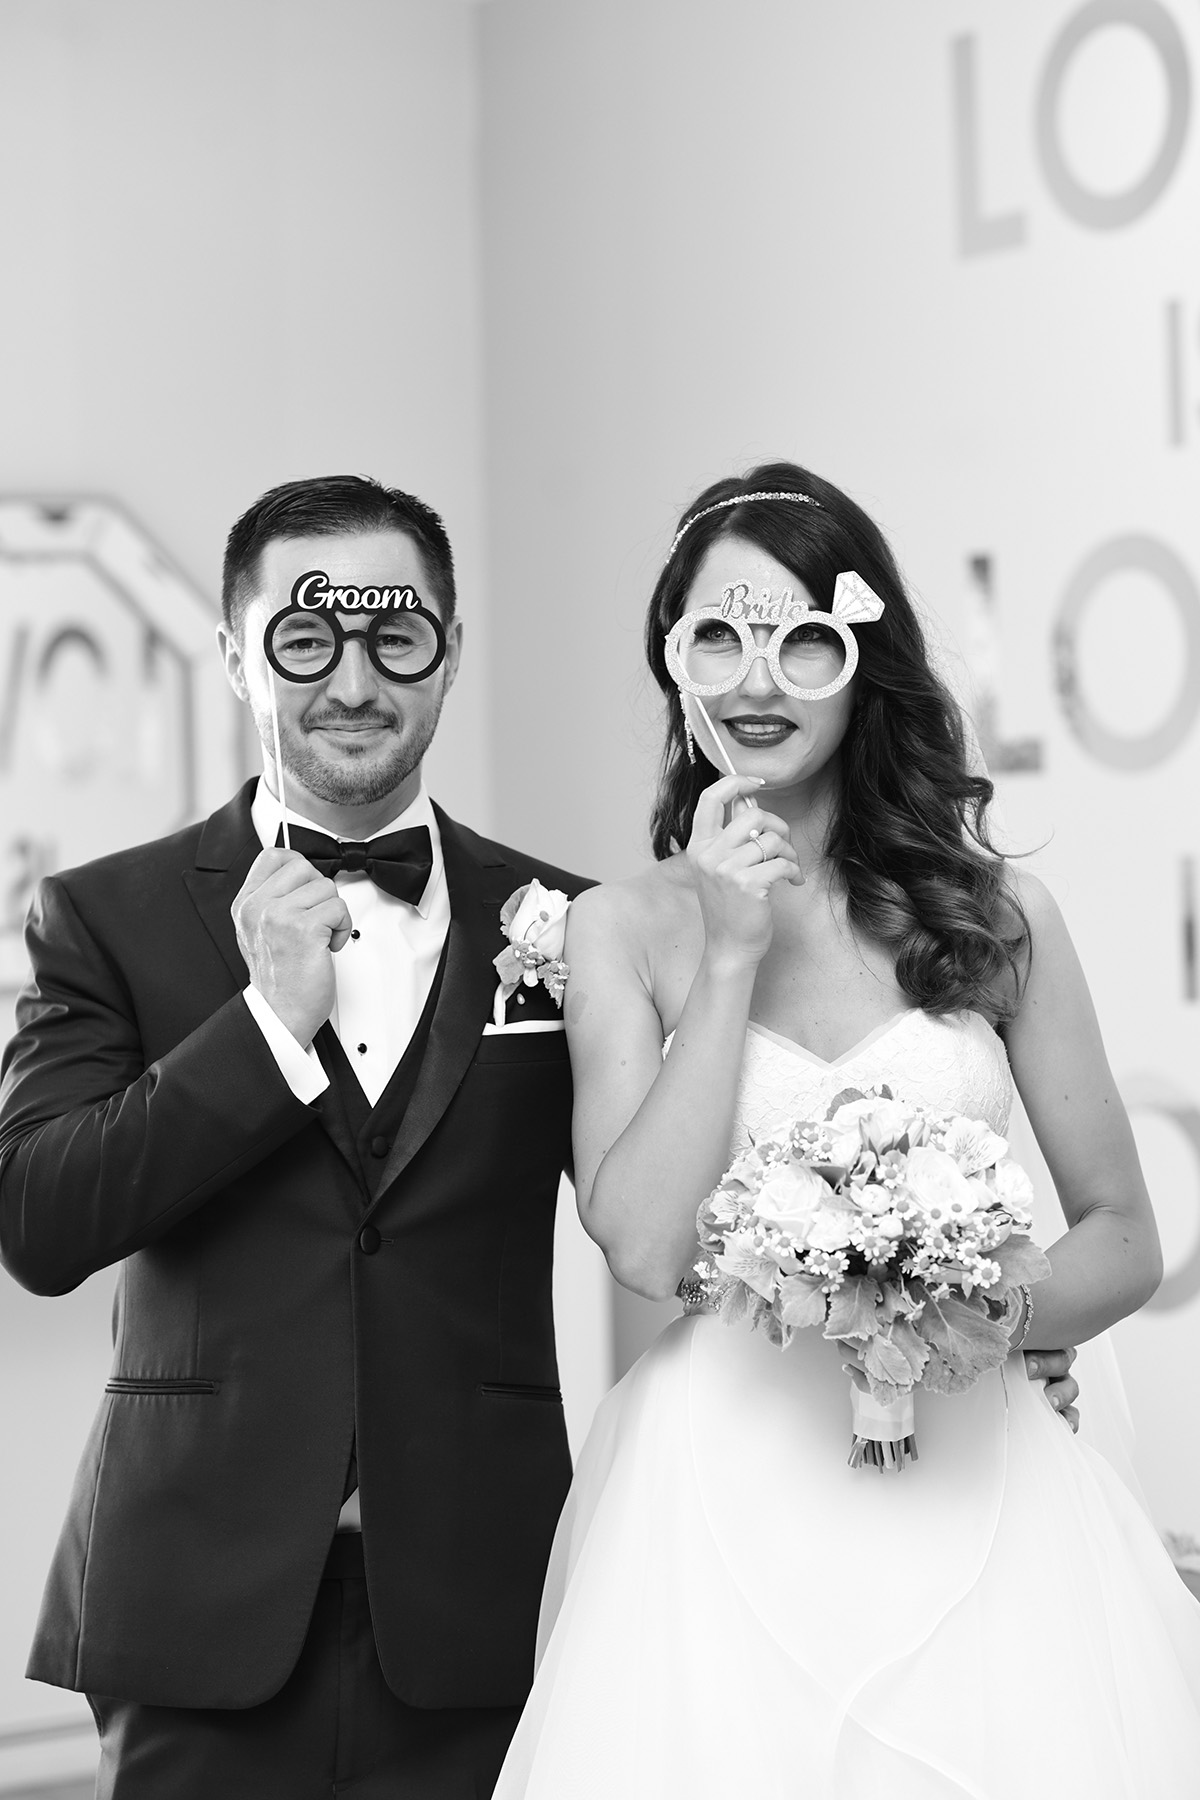 Courthouse weddings in Los Angeles at true love wedding chapel